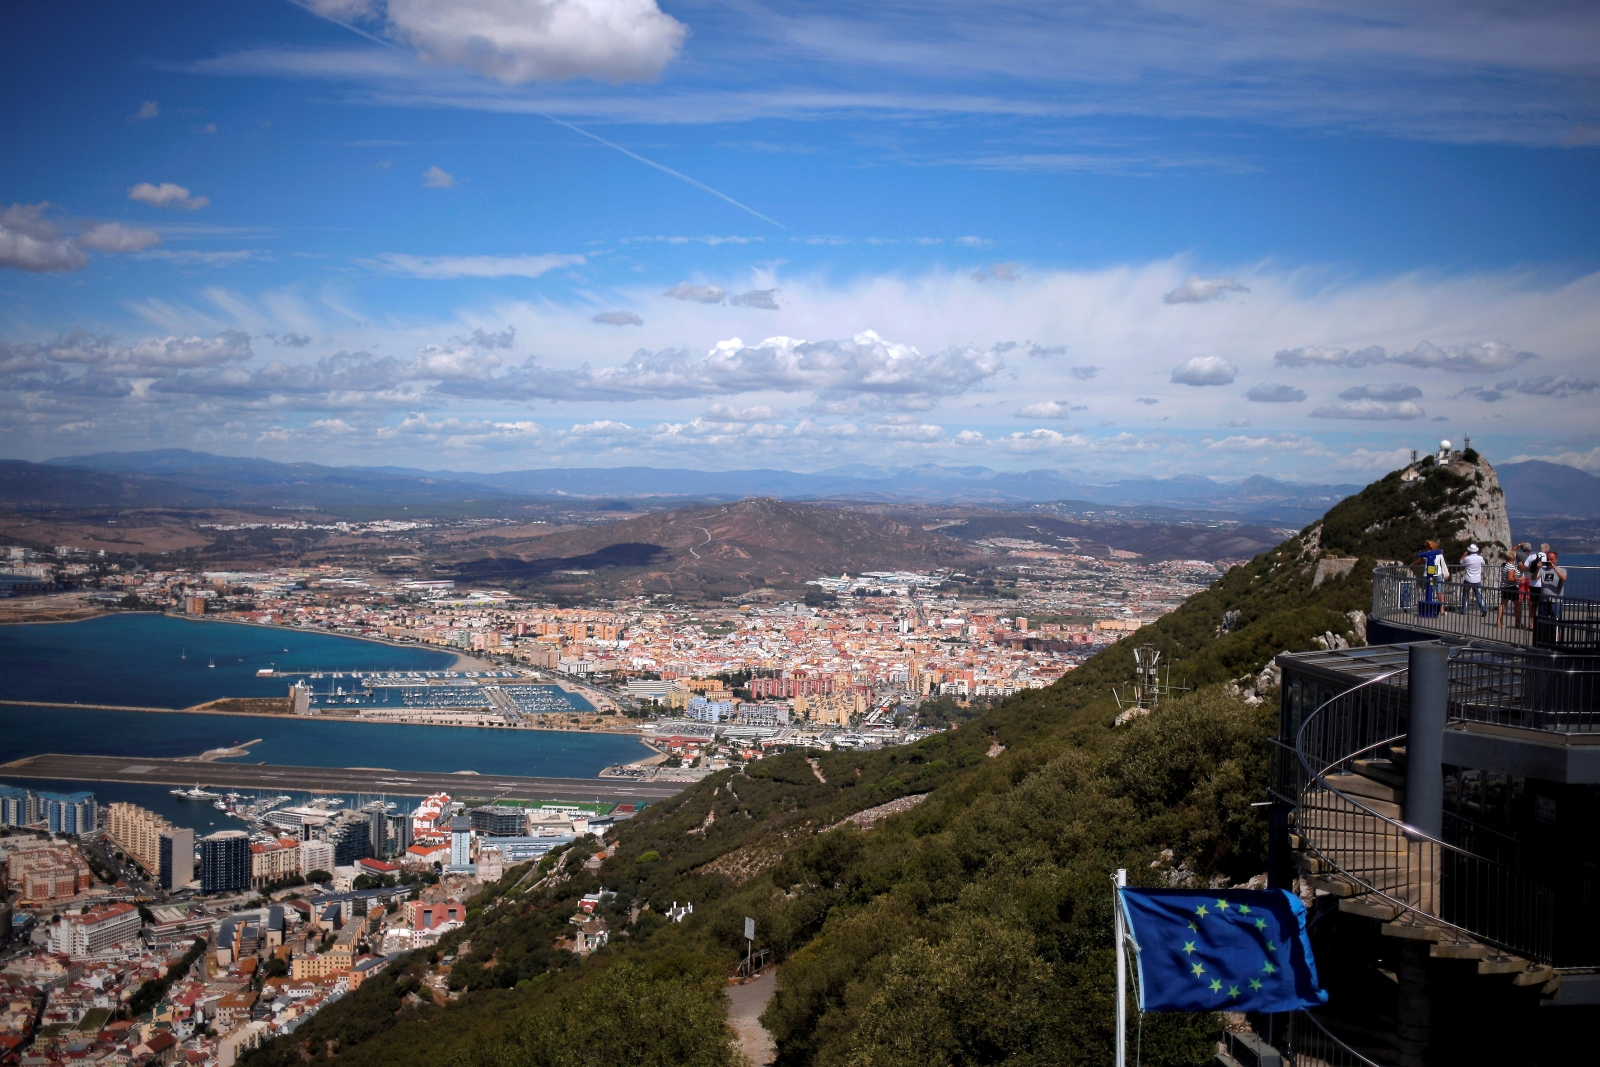 EU helping Spain act like bully: Gibraltar